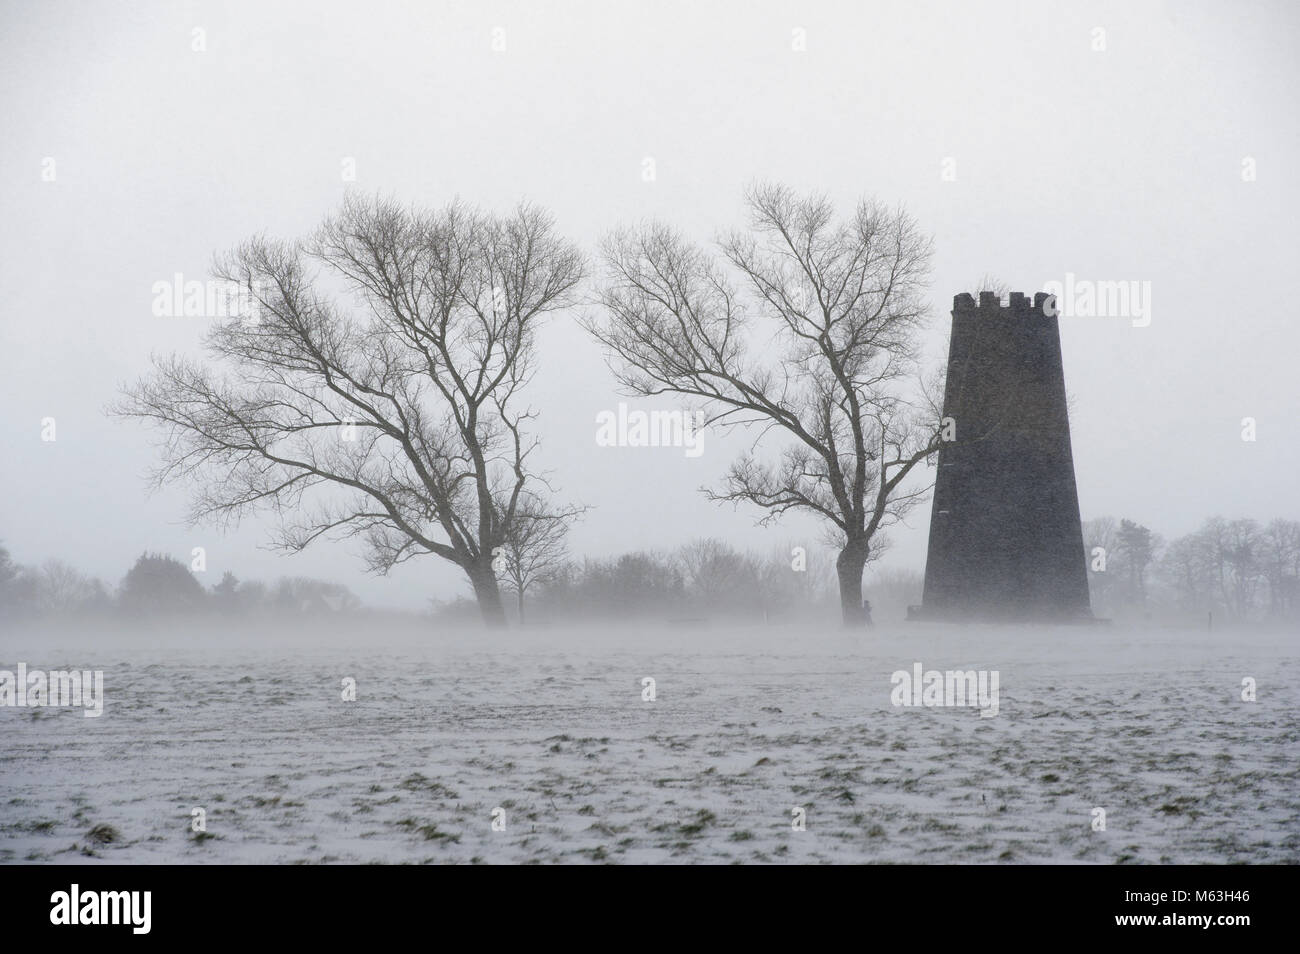 Beverley, UK. 28th Feb, 2018. A dog walker shelters behind a tree in blizzard conditions during 'The Beast From - Stock Image